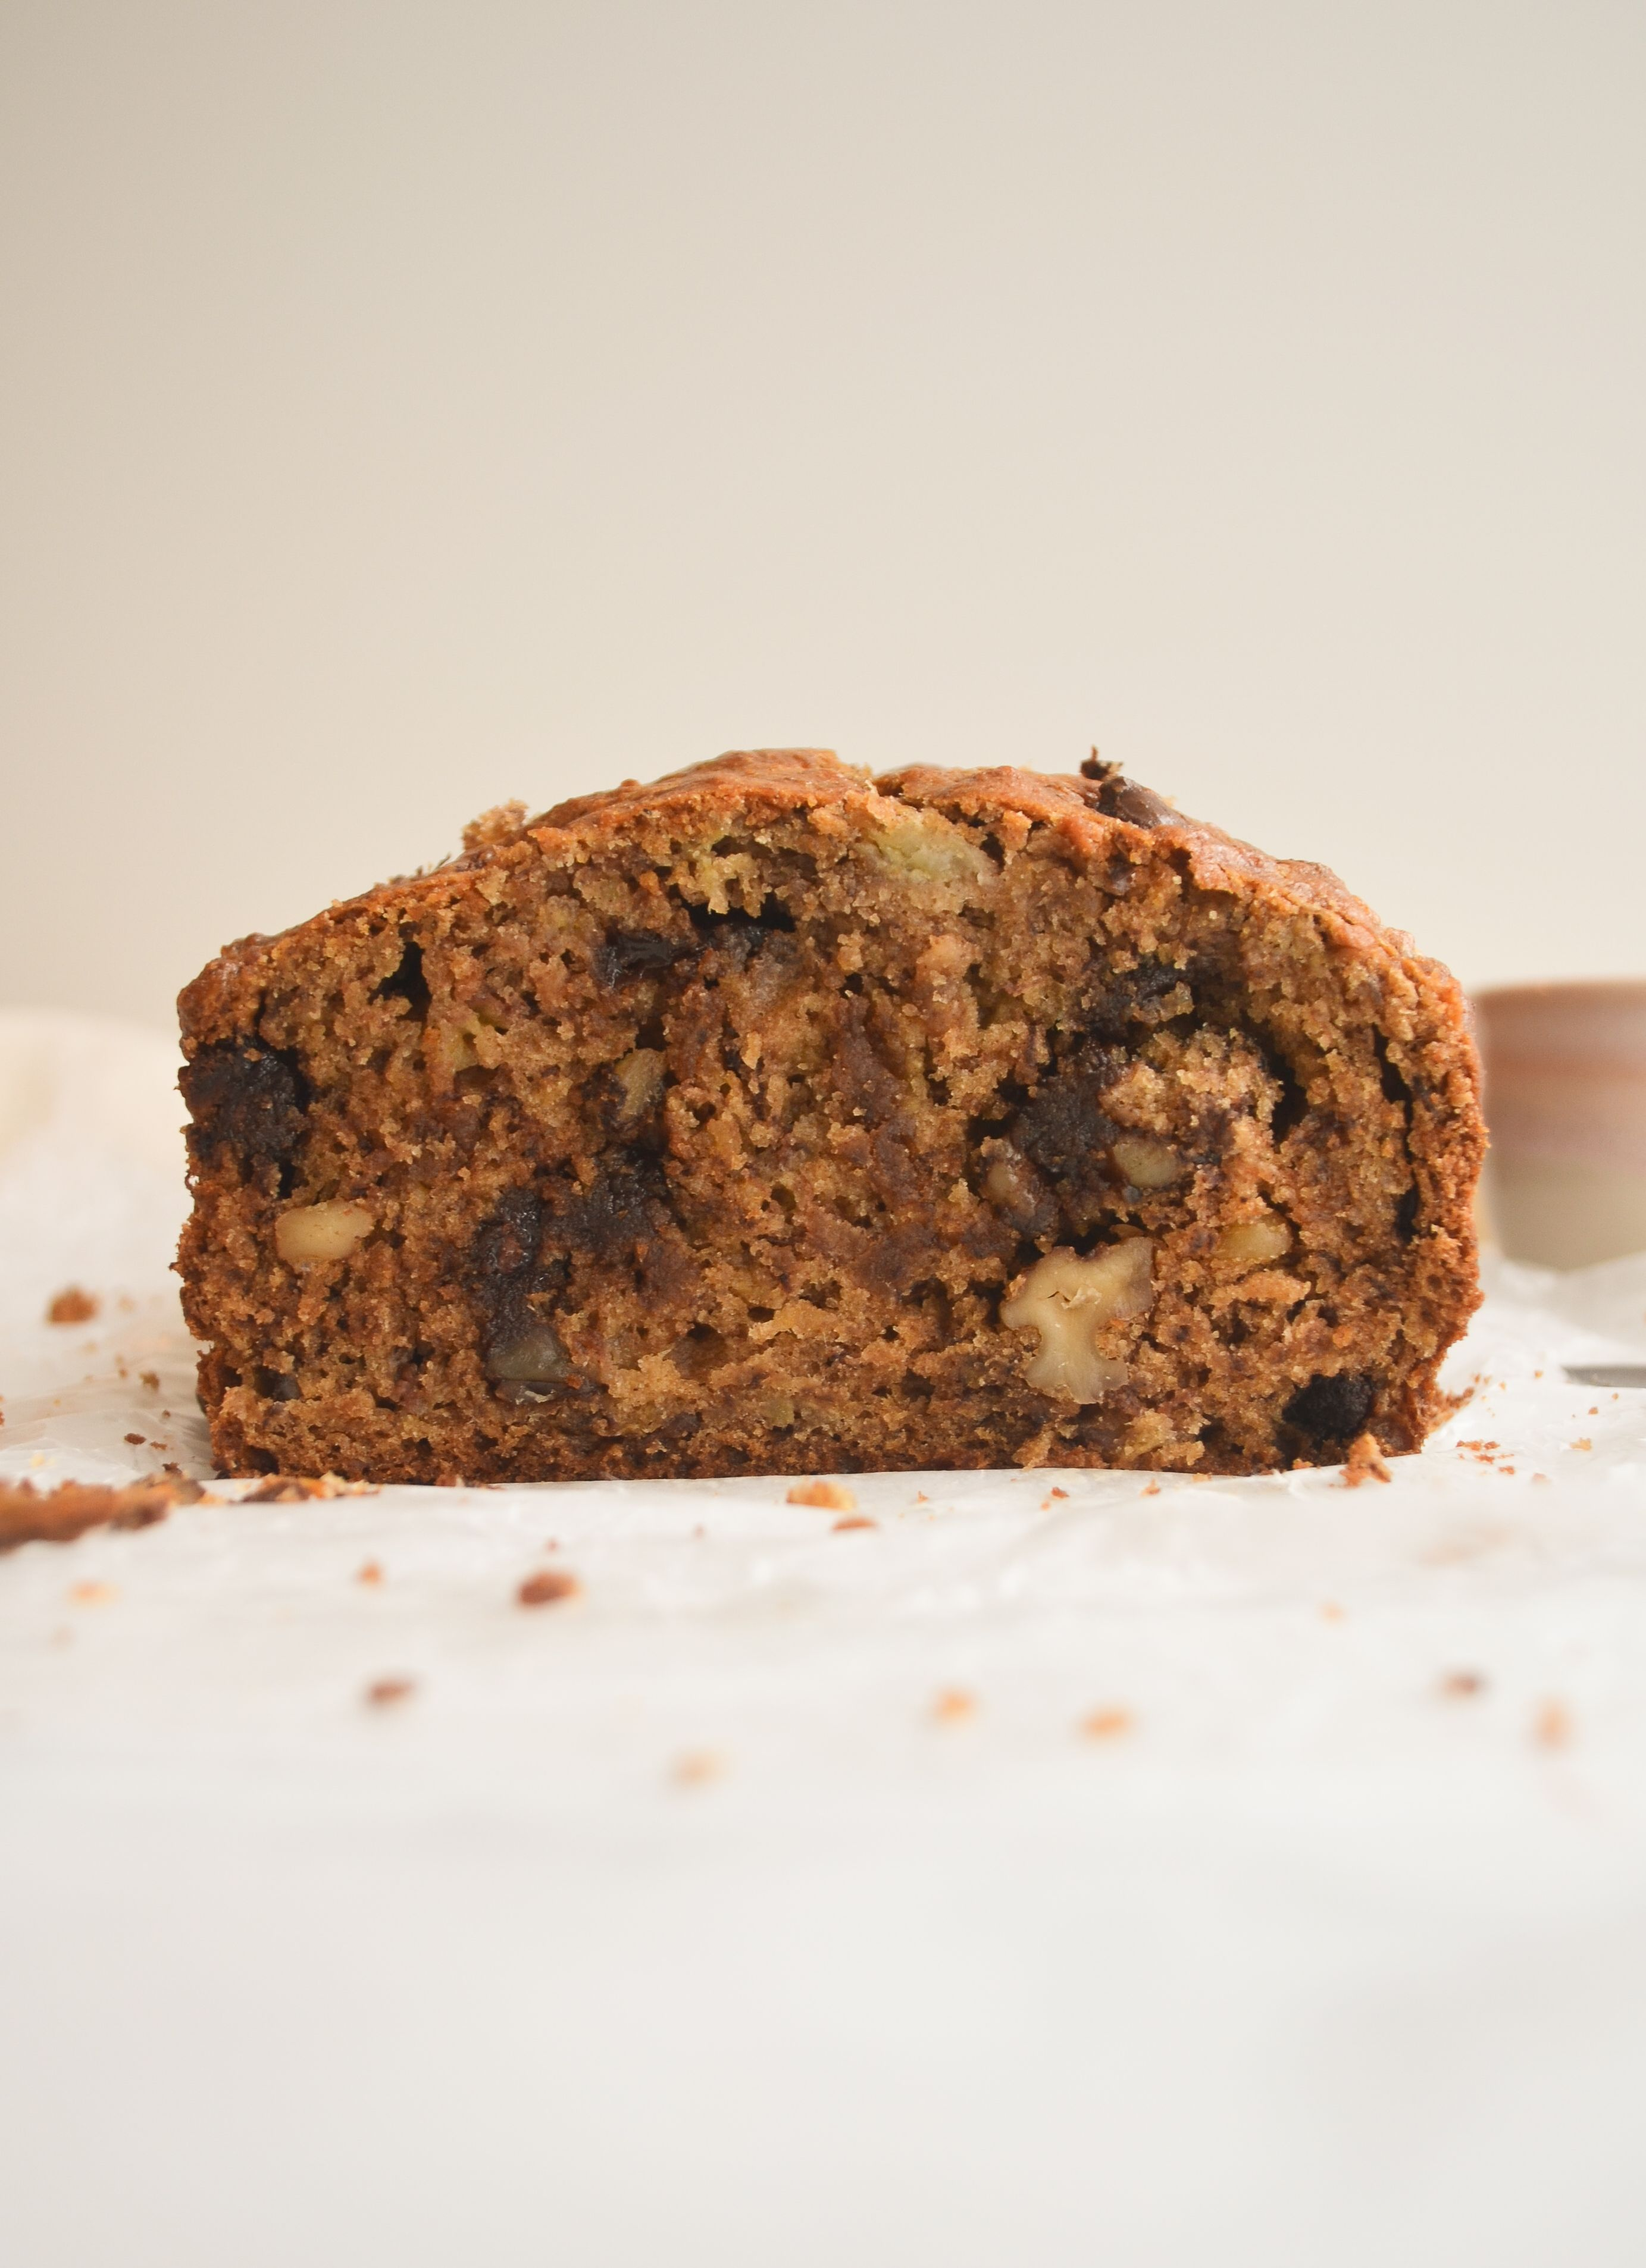 Banana Walnut Bread with Chocolate Chips